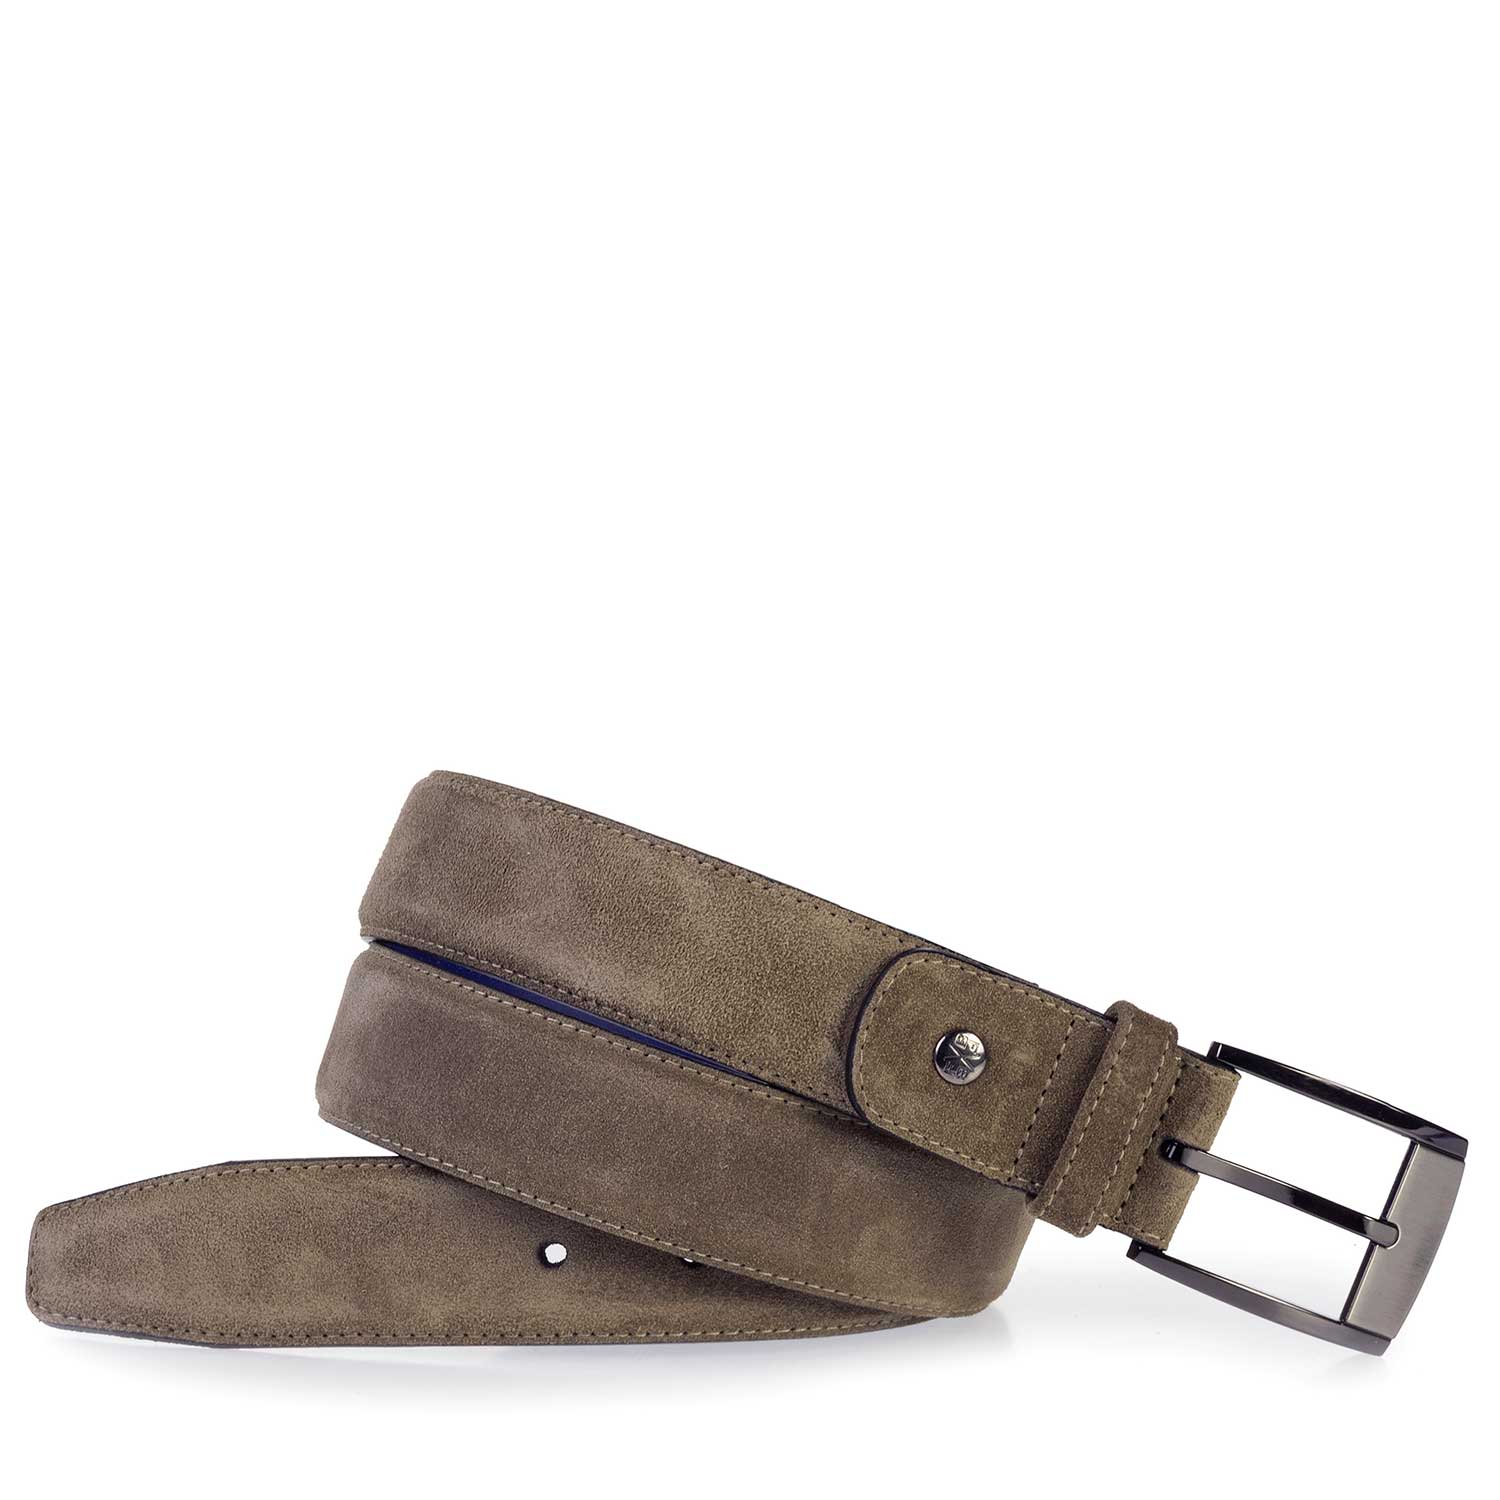 75183/04 - Belt suede leather taupe